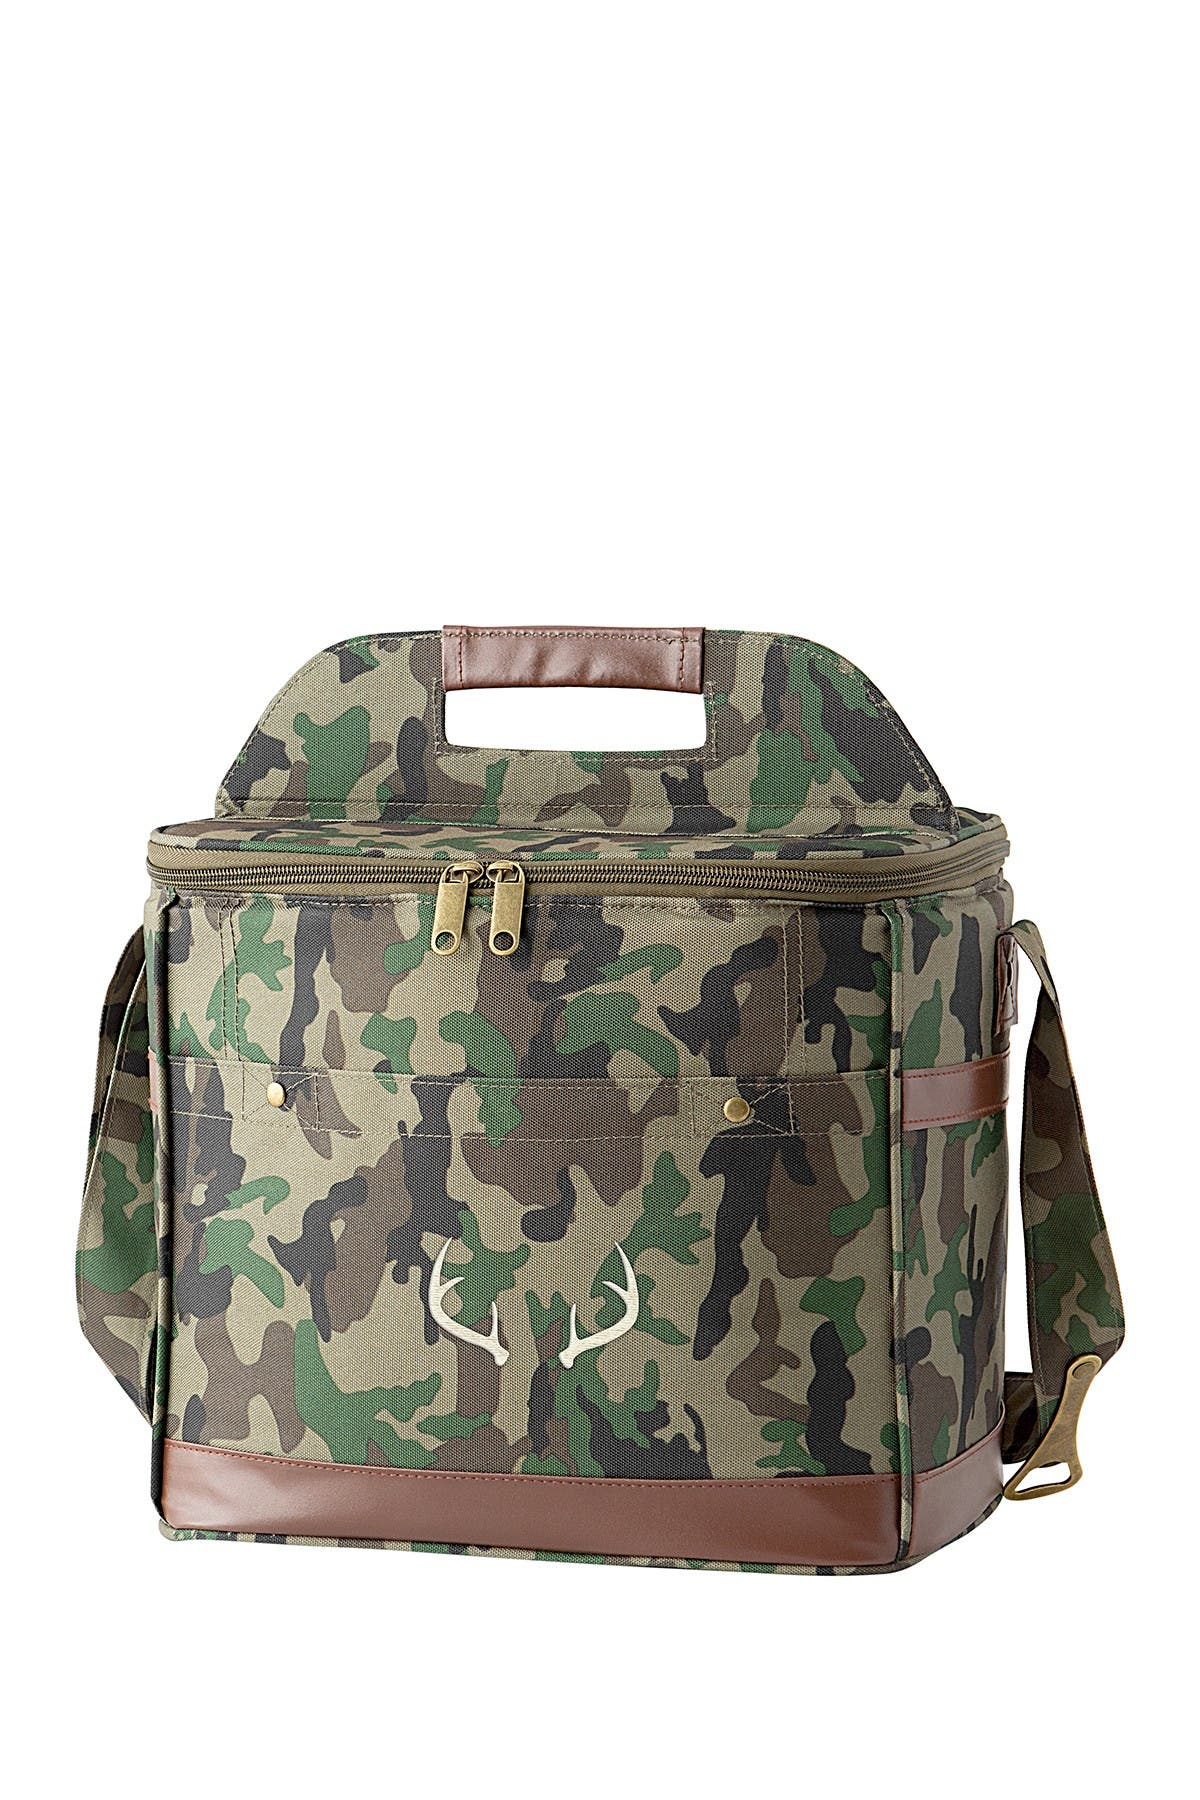 Image of Cathy's Concepts 12-Pack Camo Cooler Bag